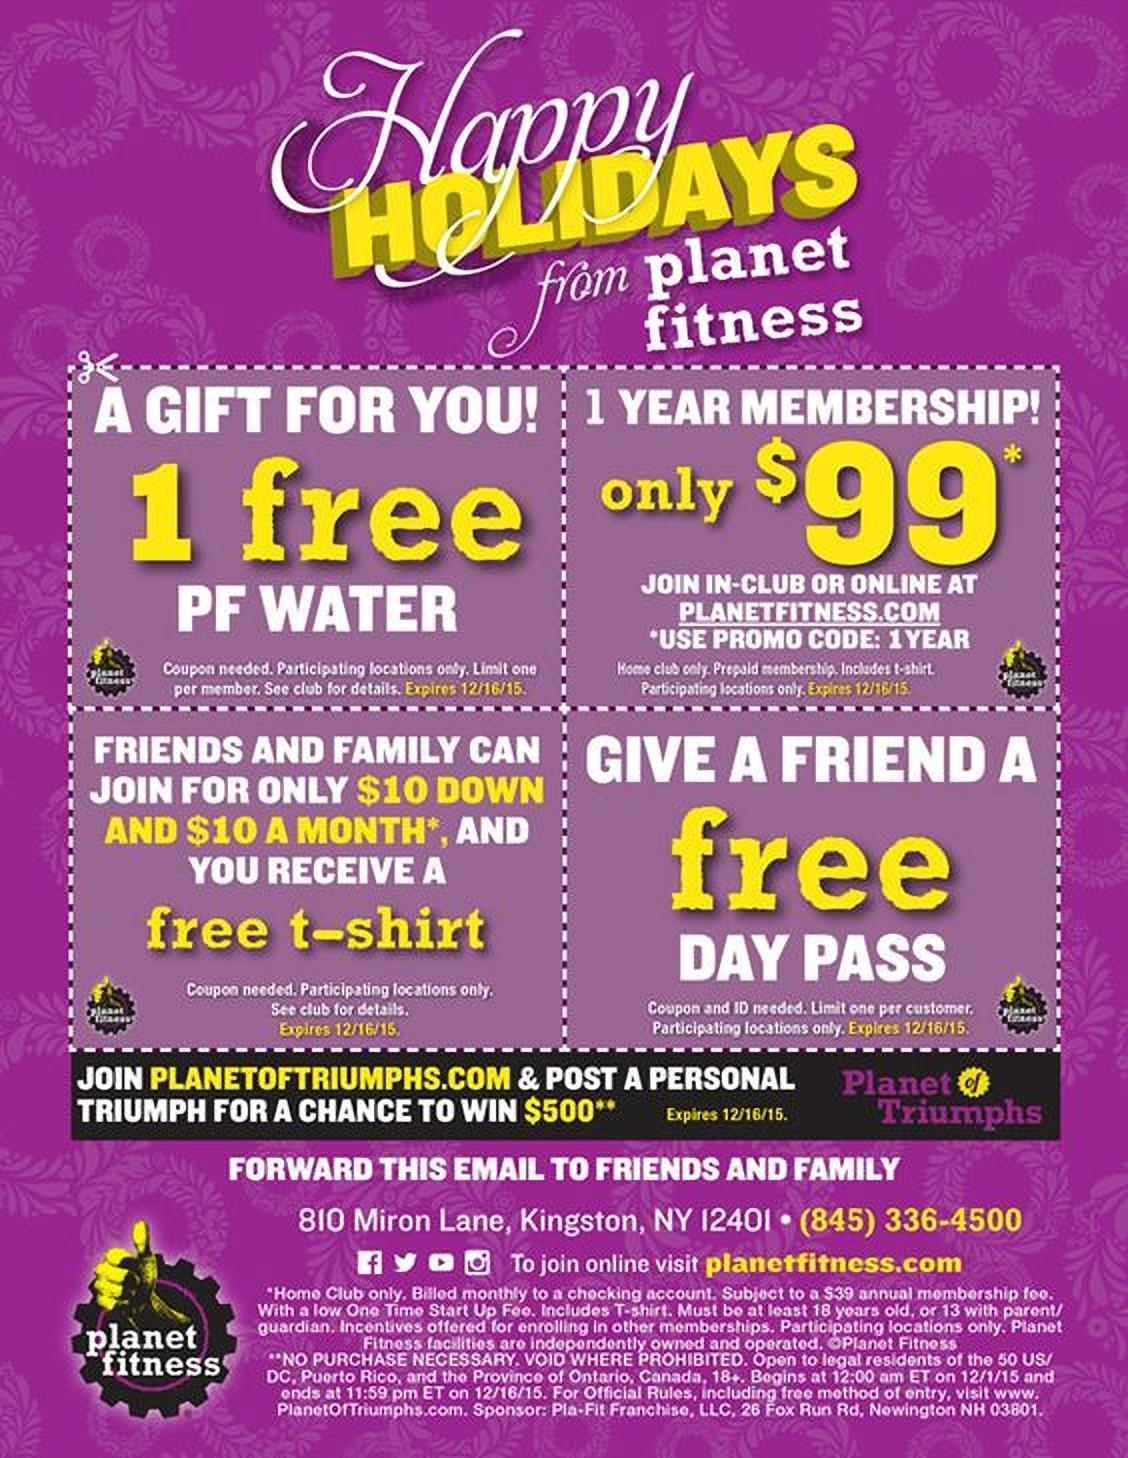 example from Planet Fitness, they offer a variety of different member exclusives for the holiday season.